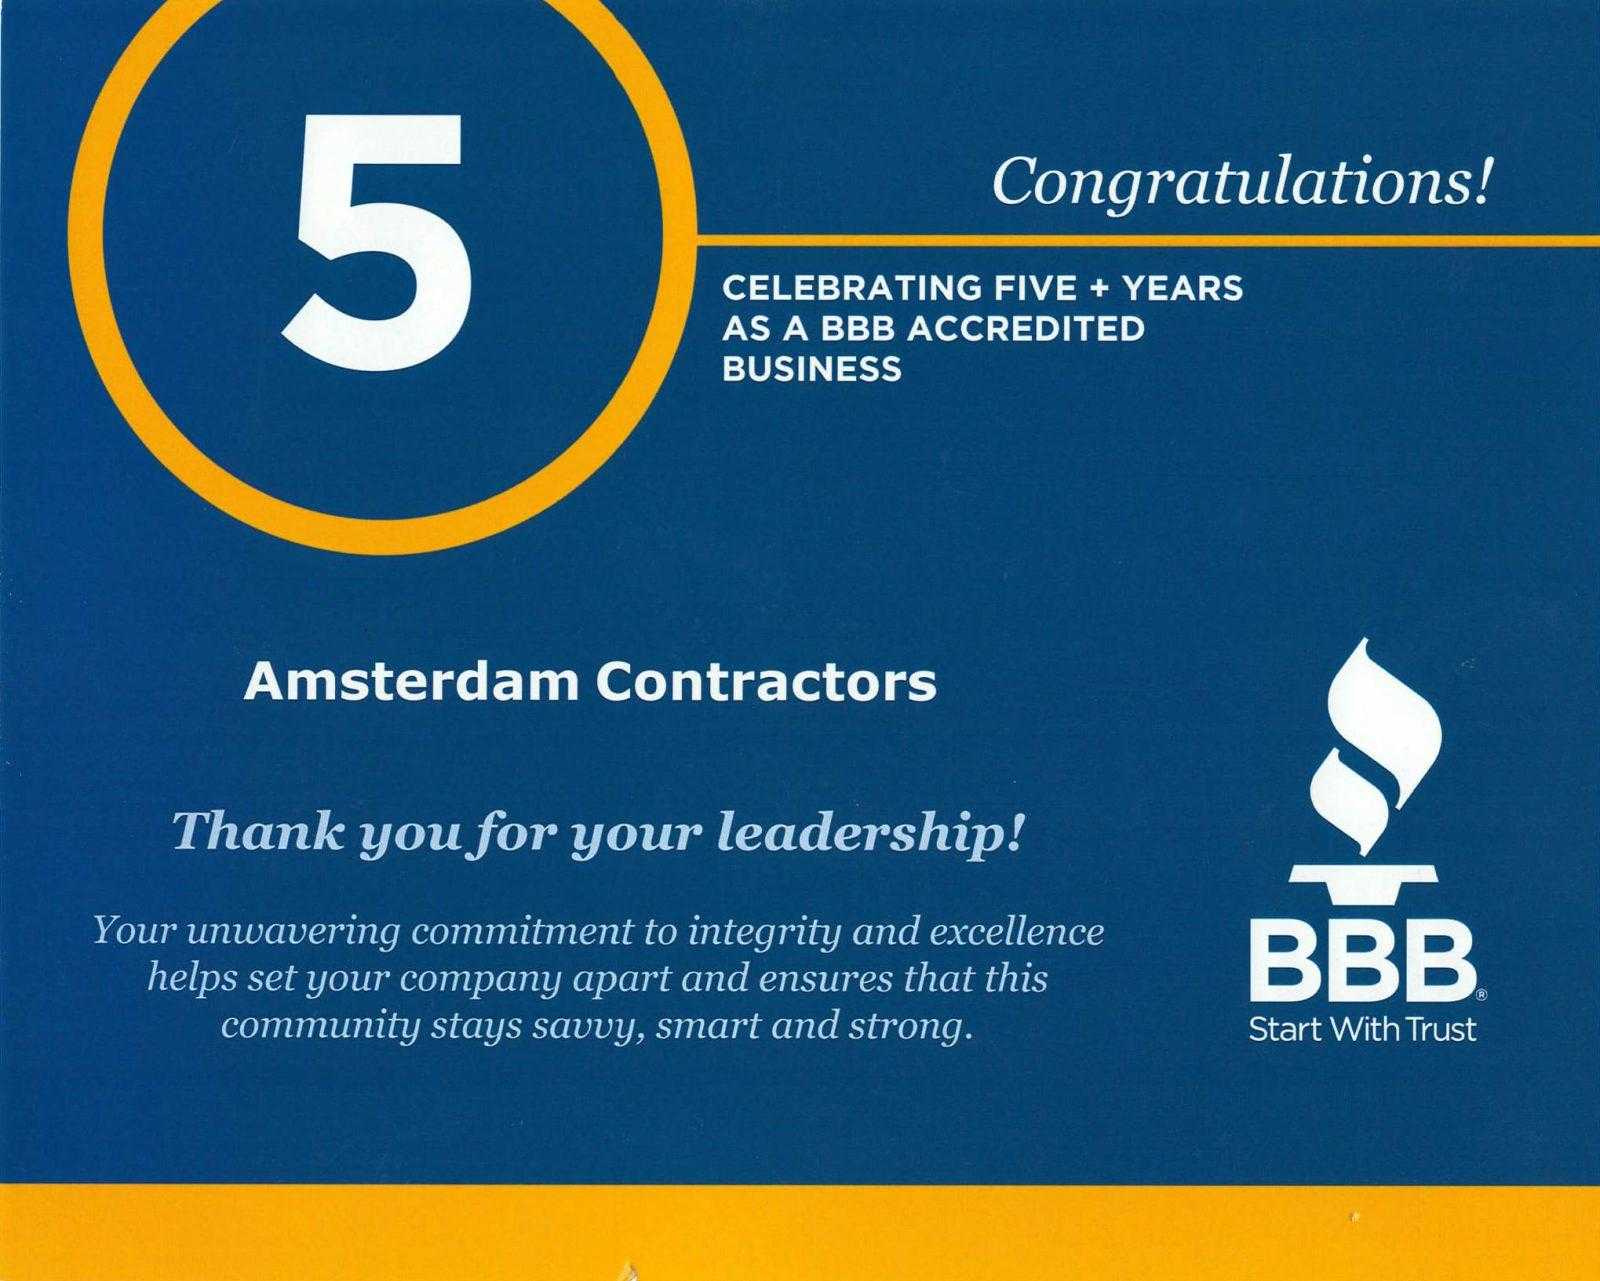 BBB-5-Year-Certificate-Amsterdam-Contractors